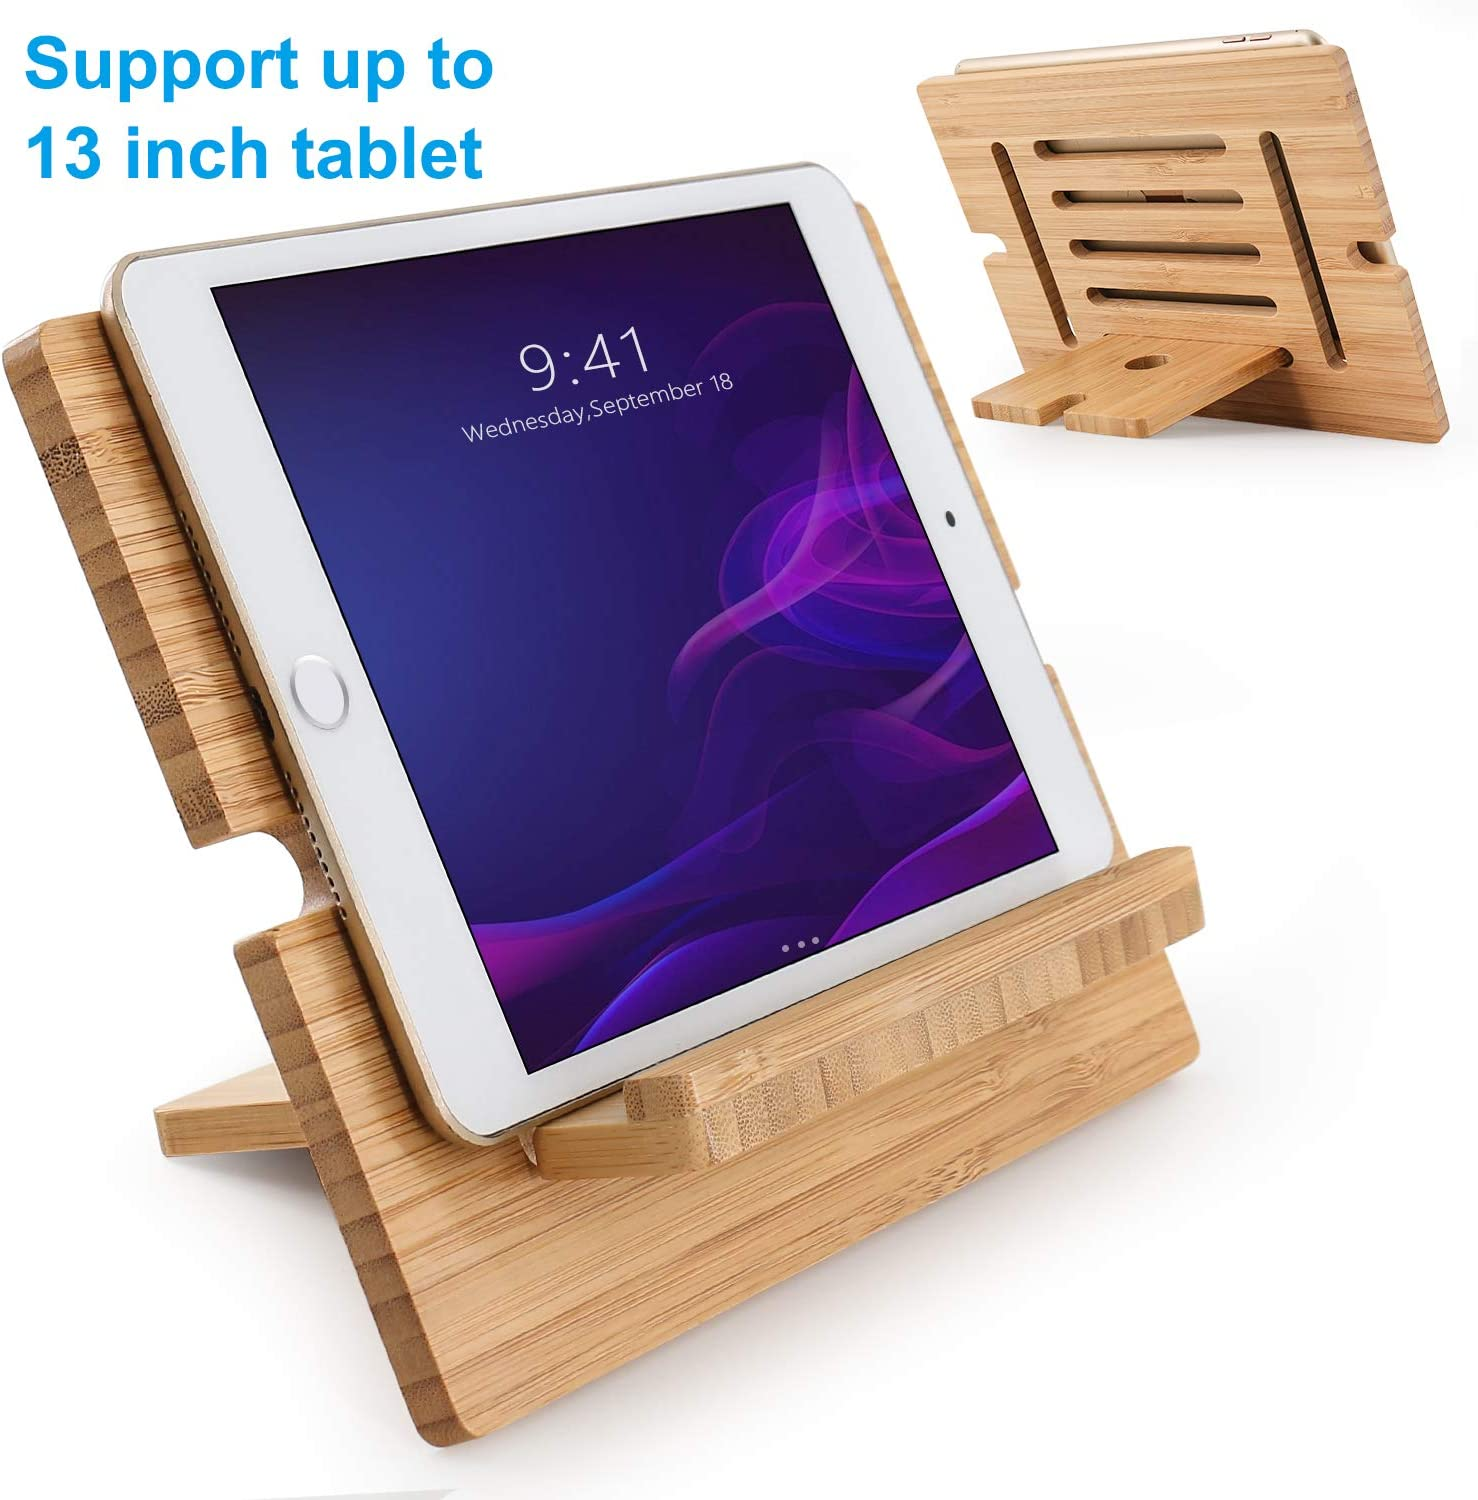 "Bamboo Tablet Stand Adjustable, Pezin & Hulin Desktop Cell Phone Stand Holder Dock Compatible with Pad Pro 9.7, 10.5, 12.9, Air 2 3 4 Mini, Kindle, Phone 8 Plus X XS Max XR (Support to 13"" Devices)"